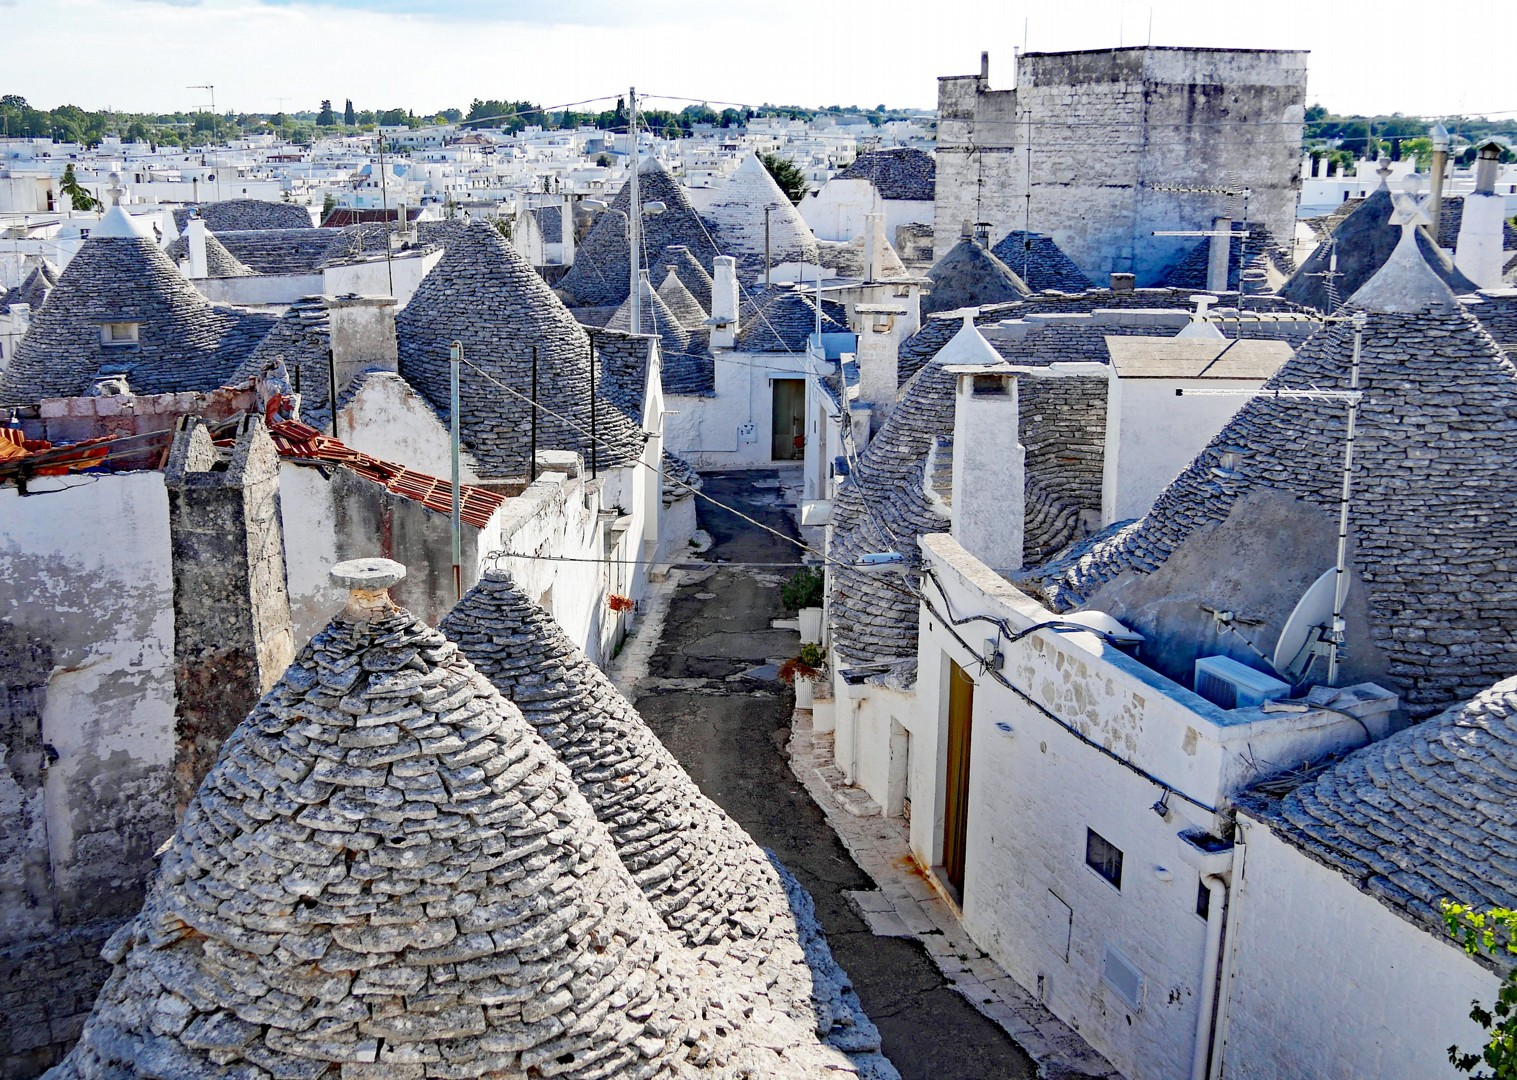 trulli-rooftop-view-alberobello-road-cycling-trip.jpg - Italy - Grand Traverse - South to North (22 days) - Guided Road Cycling Holiday - Road Cycling